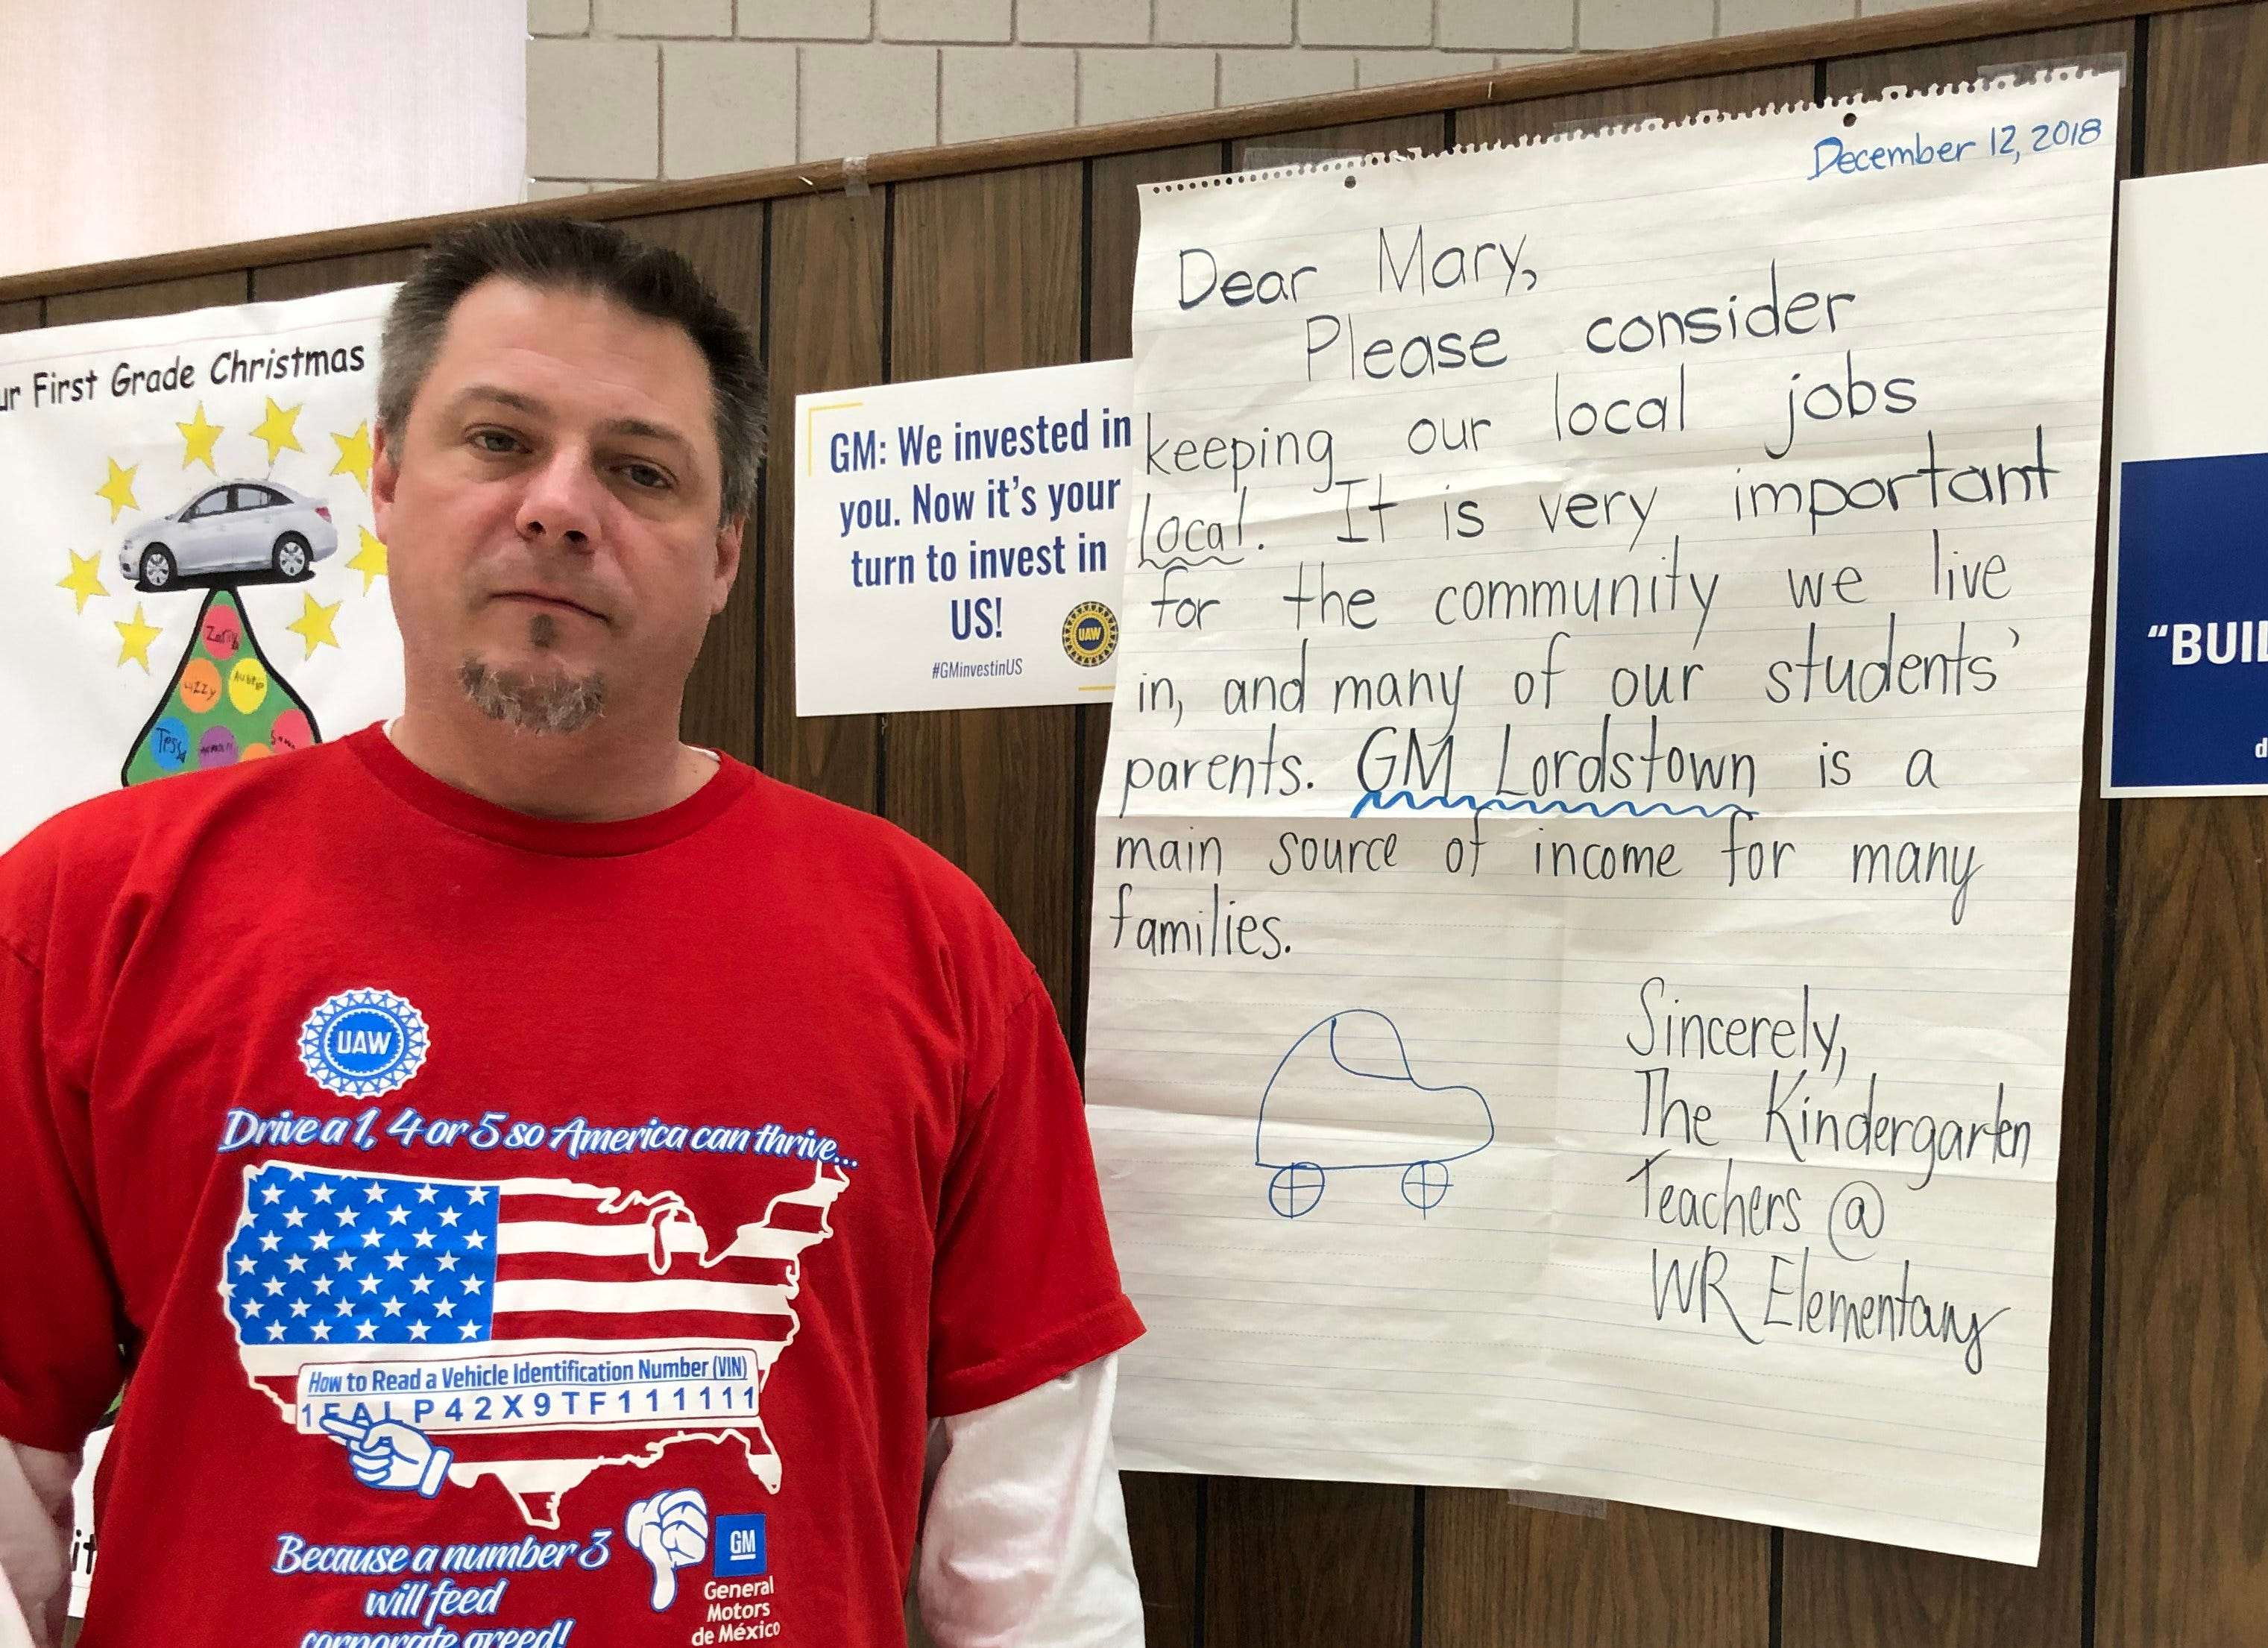 David Green, president of UAW Local 1112 representing General Motors Co.'s Lordstown Assembly, stands in front of a letter to GM CEO Mary Barra from local kindergarten teachers.